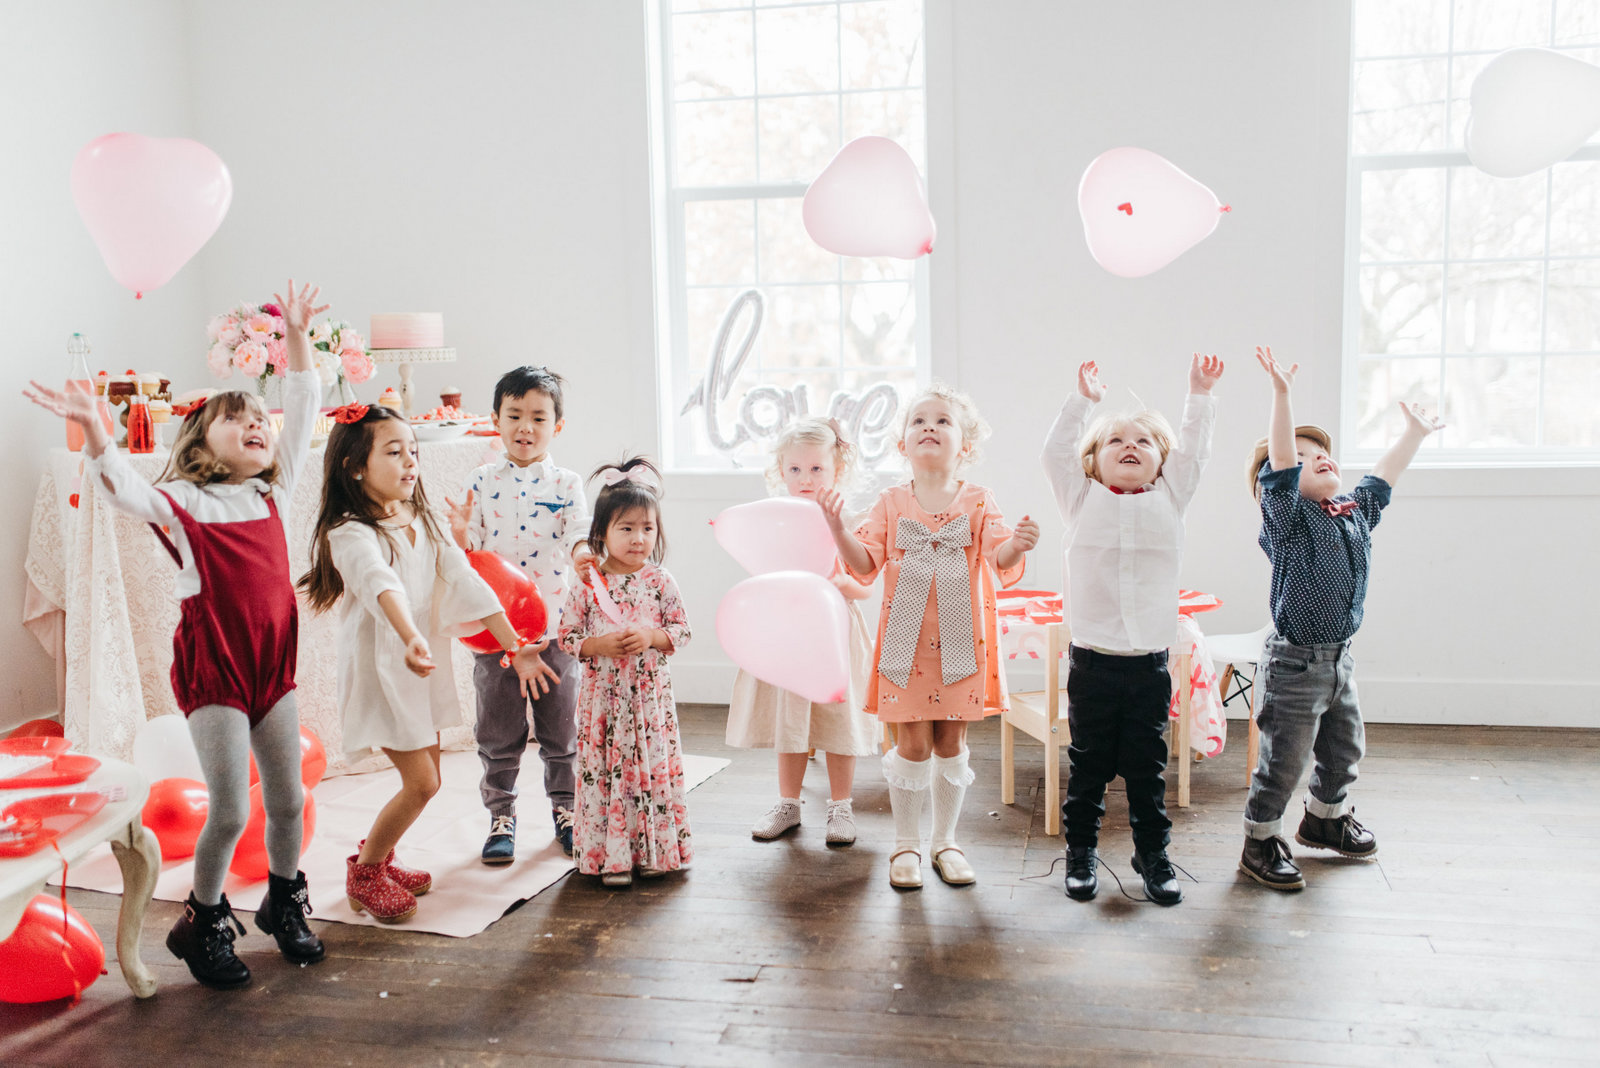 Family Valentine's Day Ideas: Valentine's outfits for kids